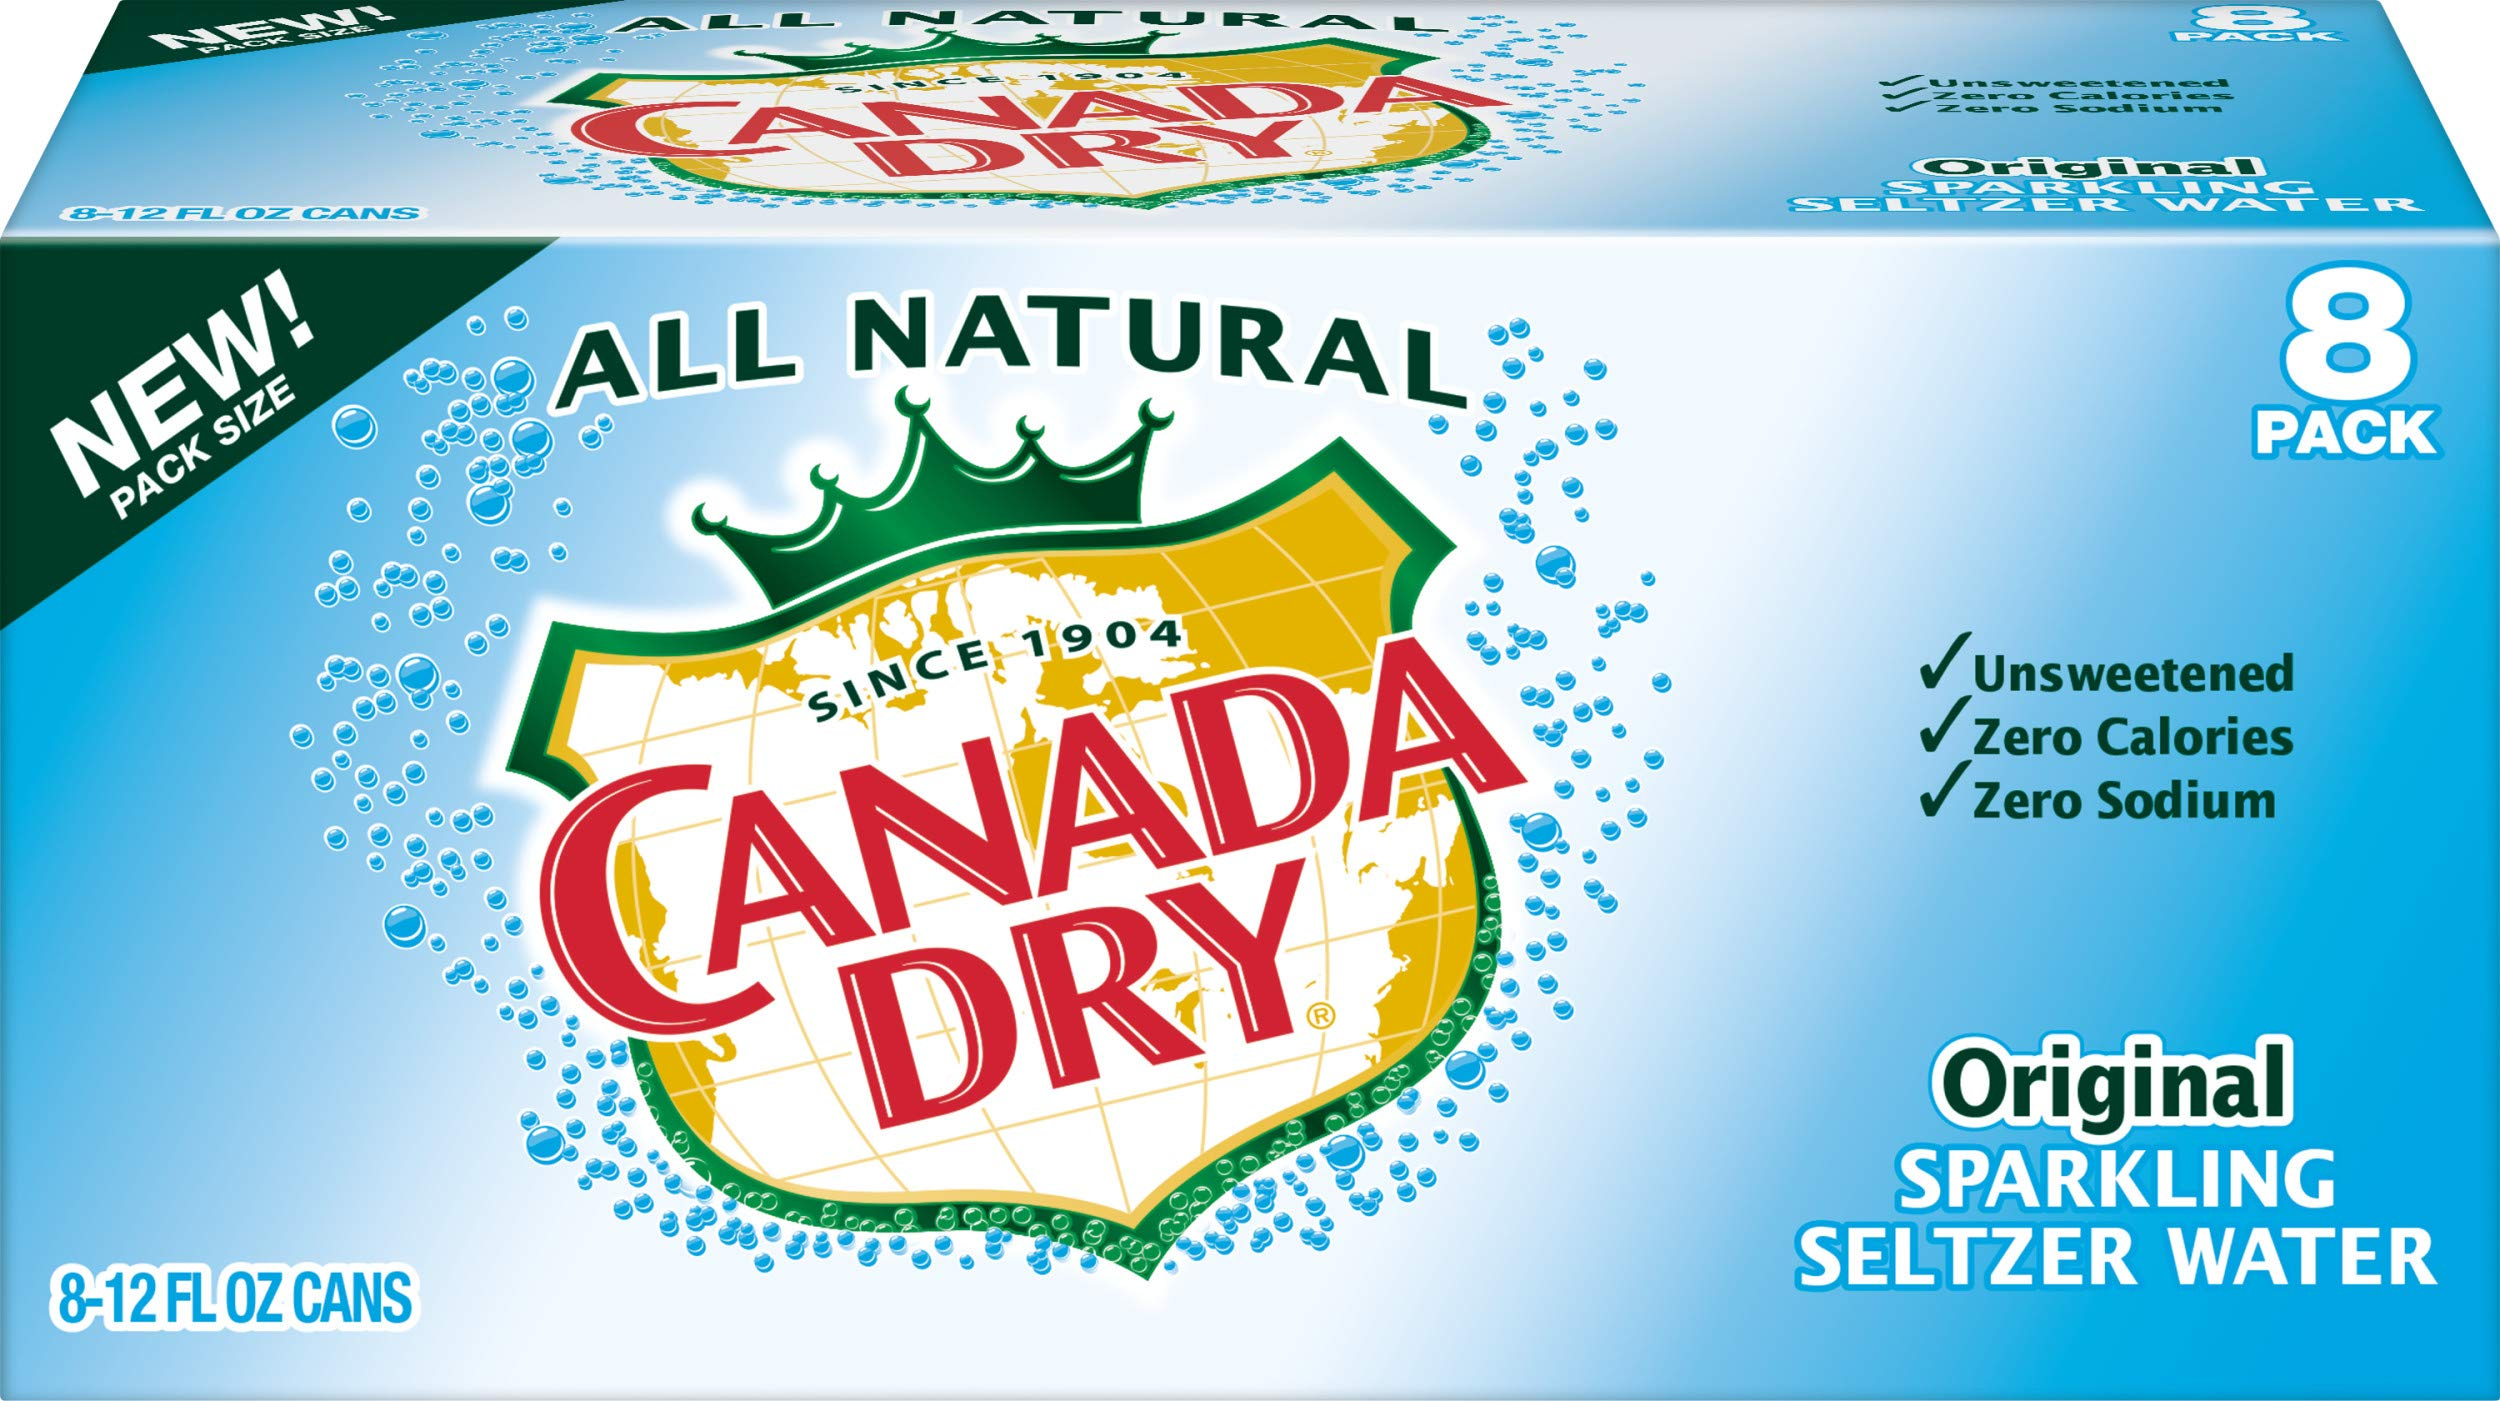 Canada Dry Original Sparkling Seltzer Water, 12 fl oz cans, 8 count